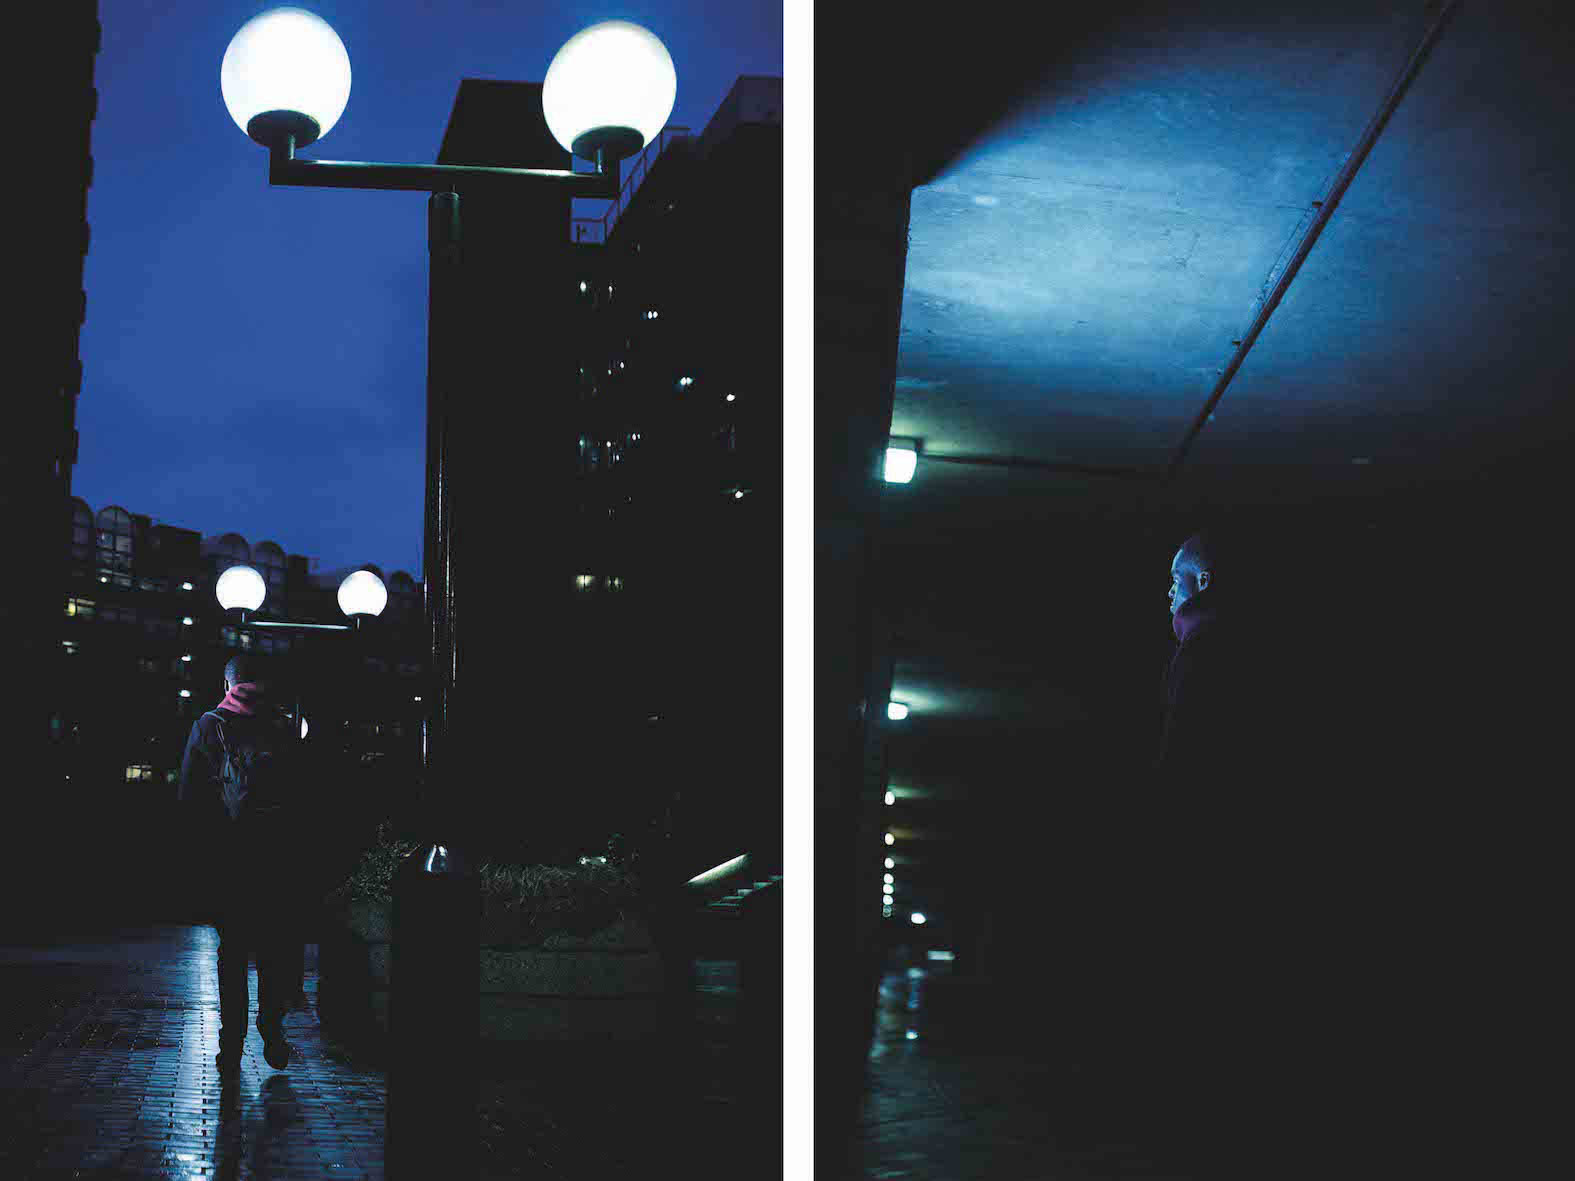 A silhouette of a man seen from the back, walking at night, barely lit, at the Barbican Centre, London, UK.